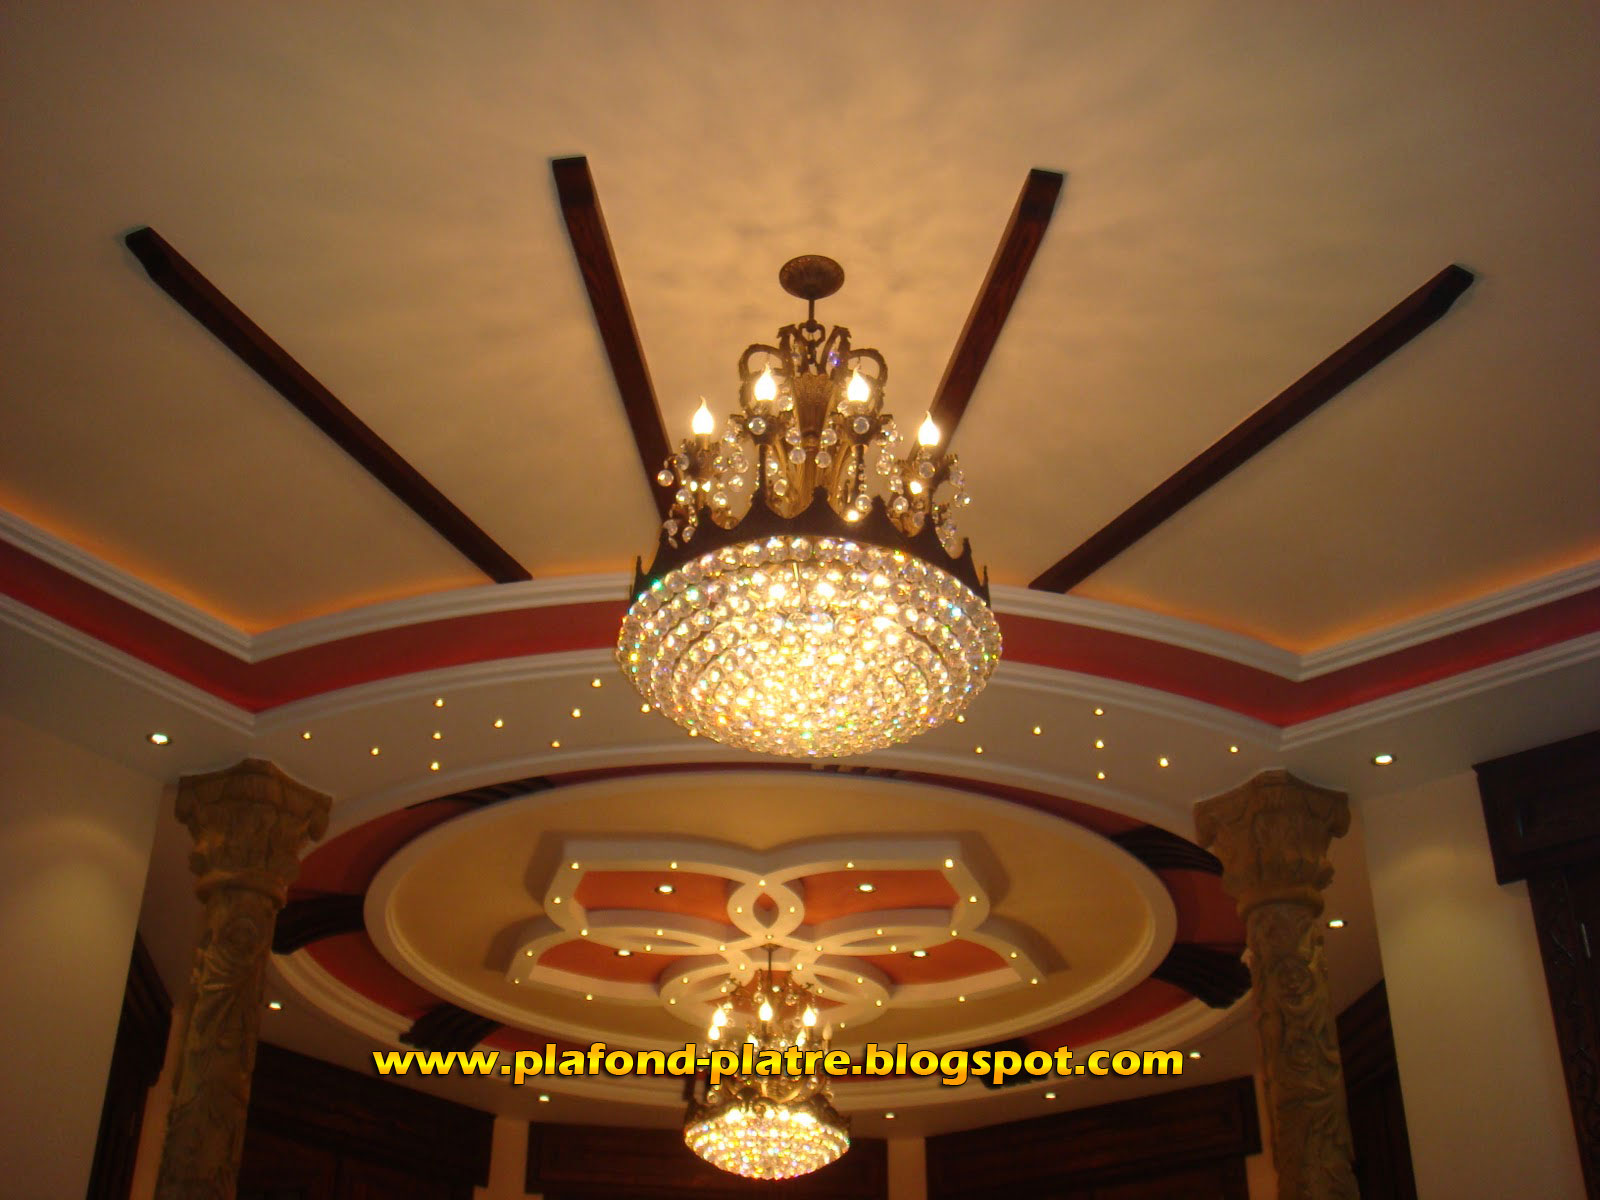 Faux plafond pl tre d coration 2013 for Decoration platre